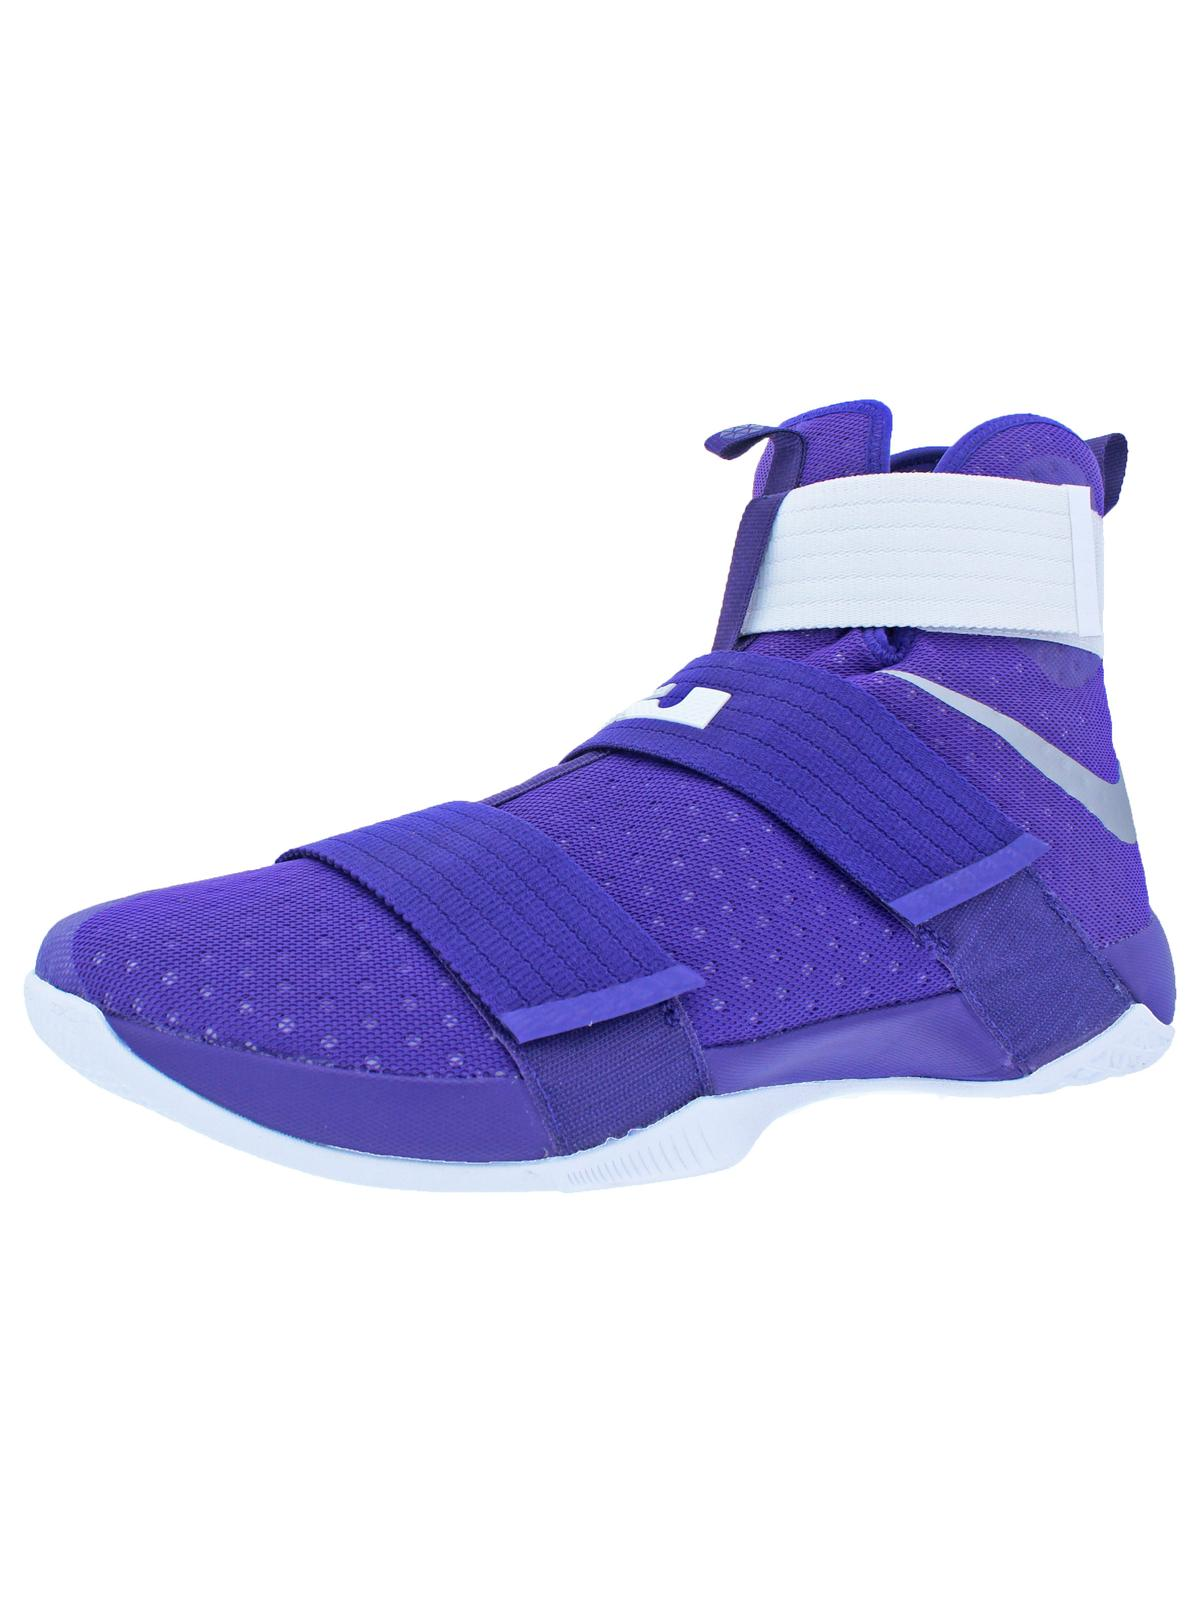 Nike LeBron Soldier 10 Men's Mesh High-Top Basketball Shoes Purple Size 18